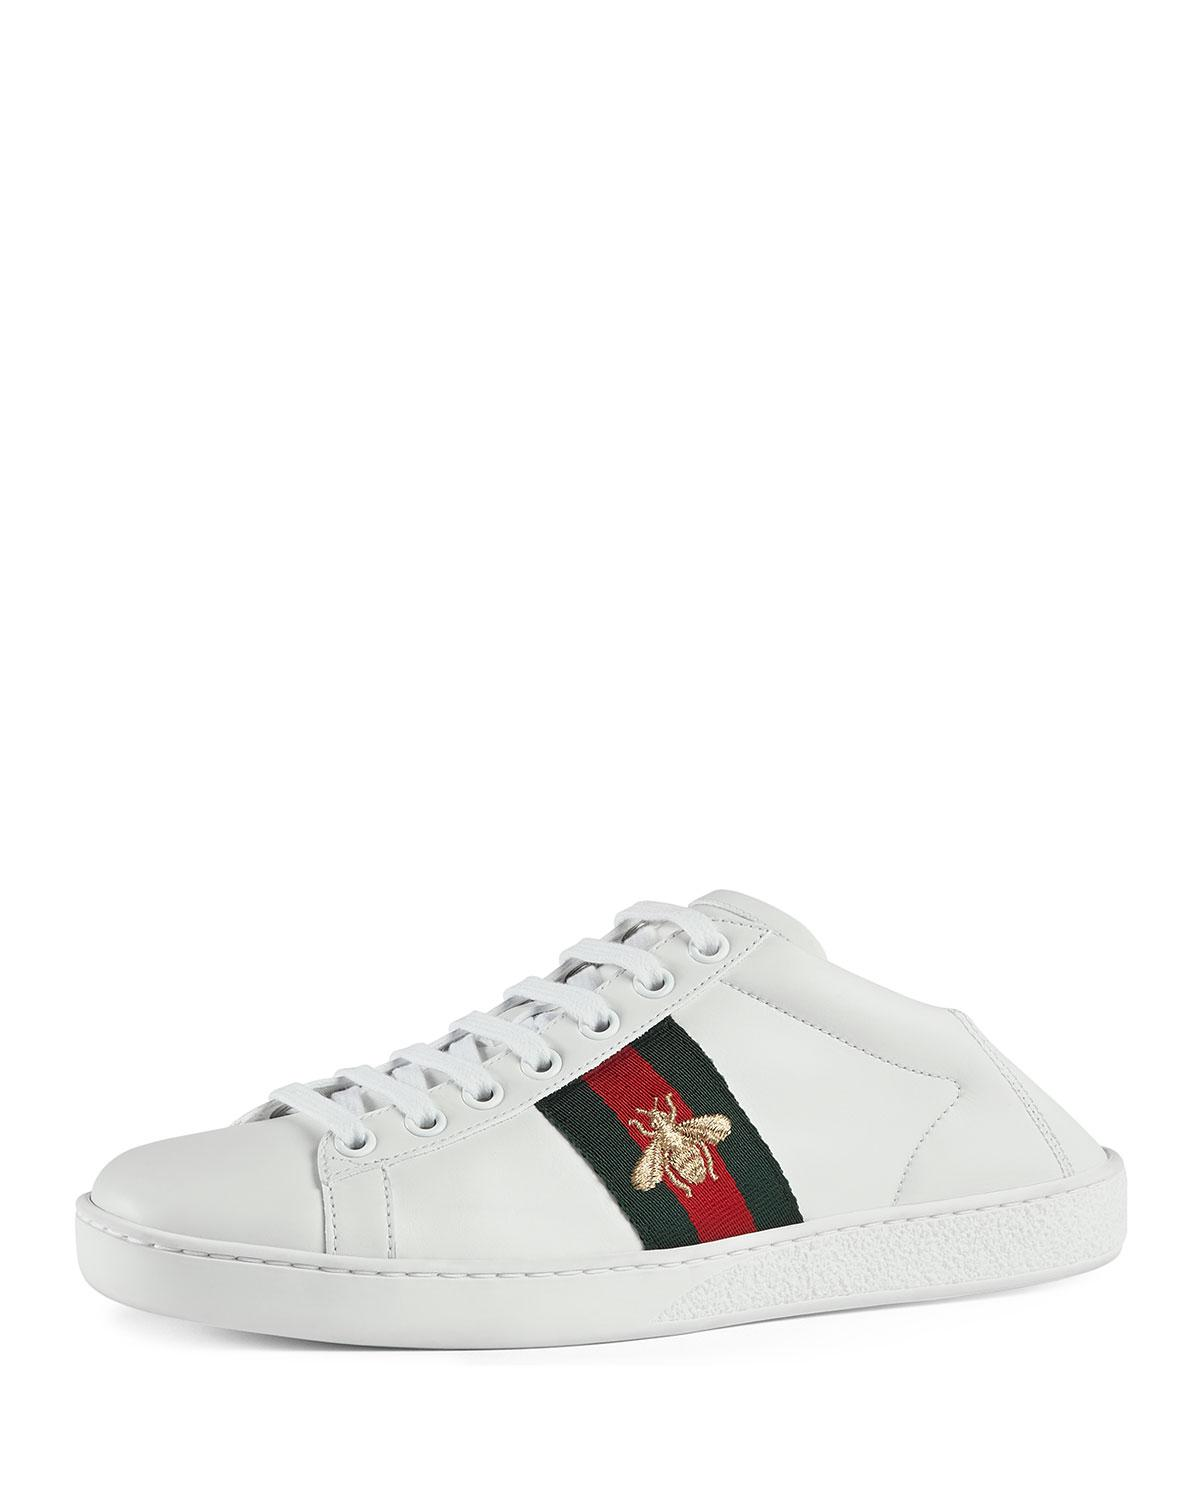 GucciBee Ace Folded Sneakers hG47tL